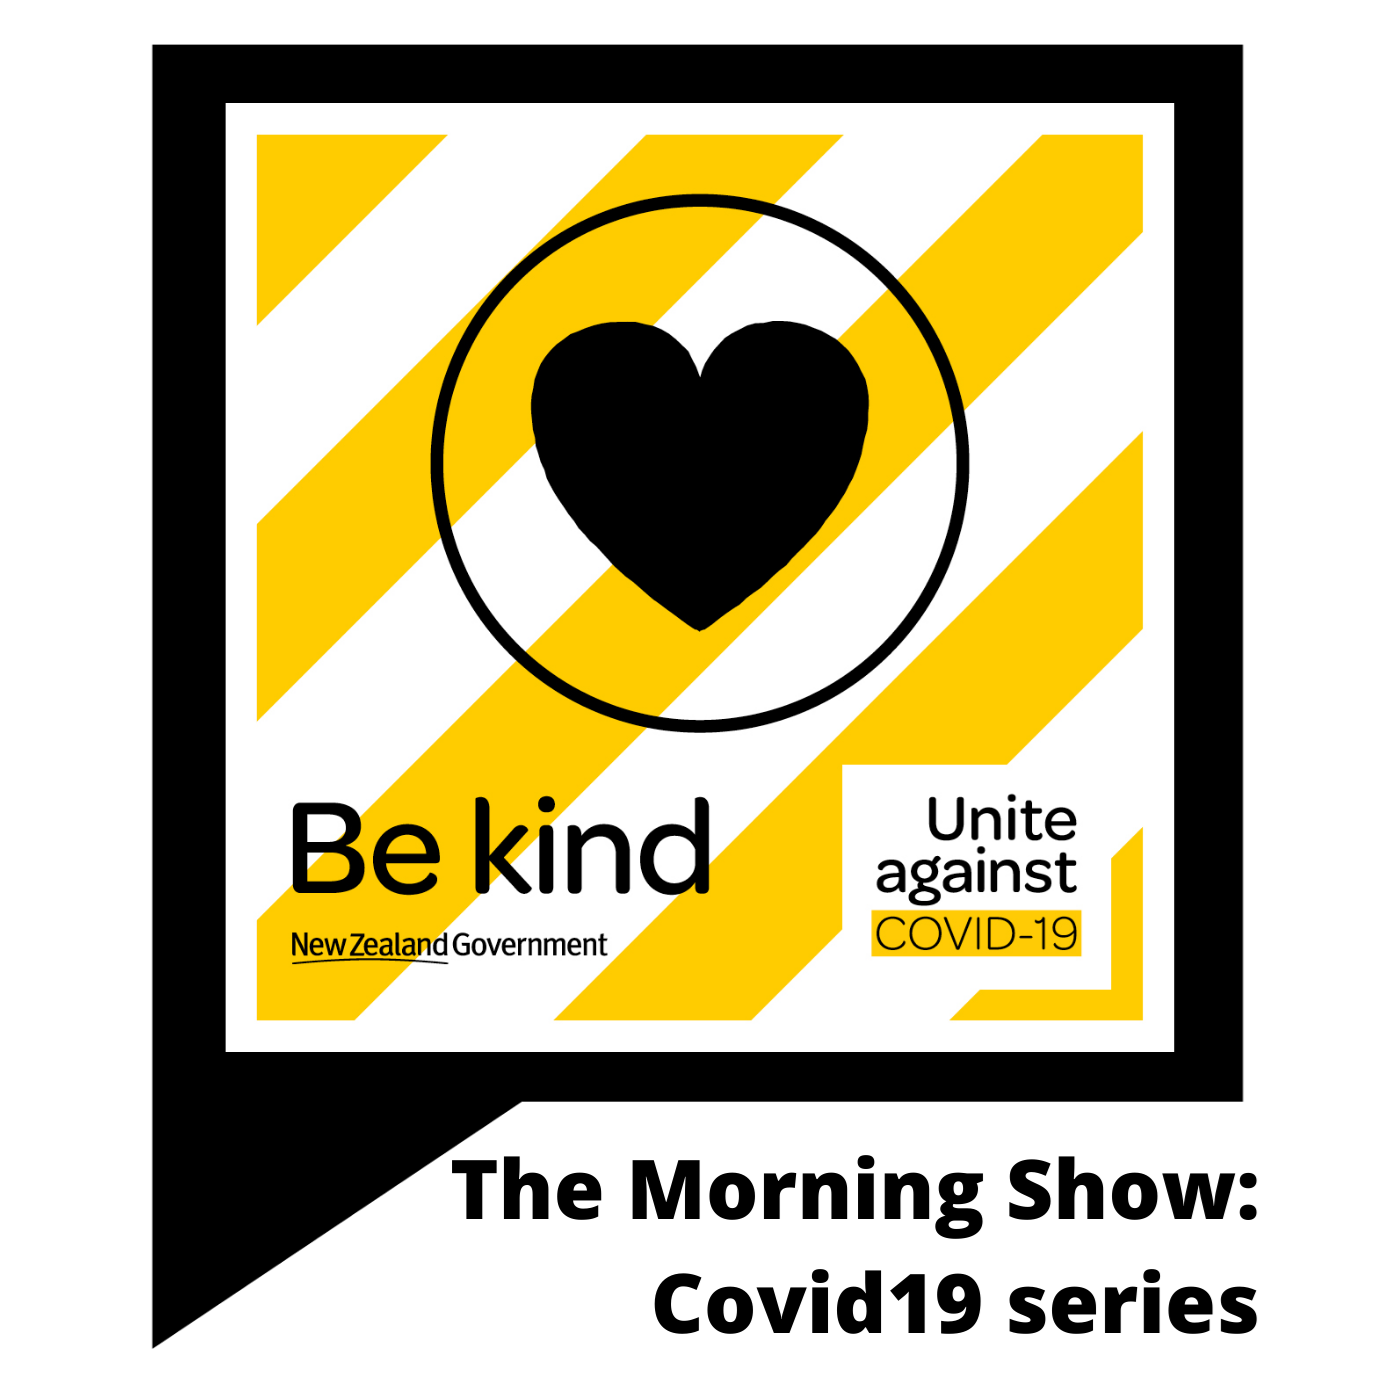 The Morning Show: Covid19 series-06-04-2020